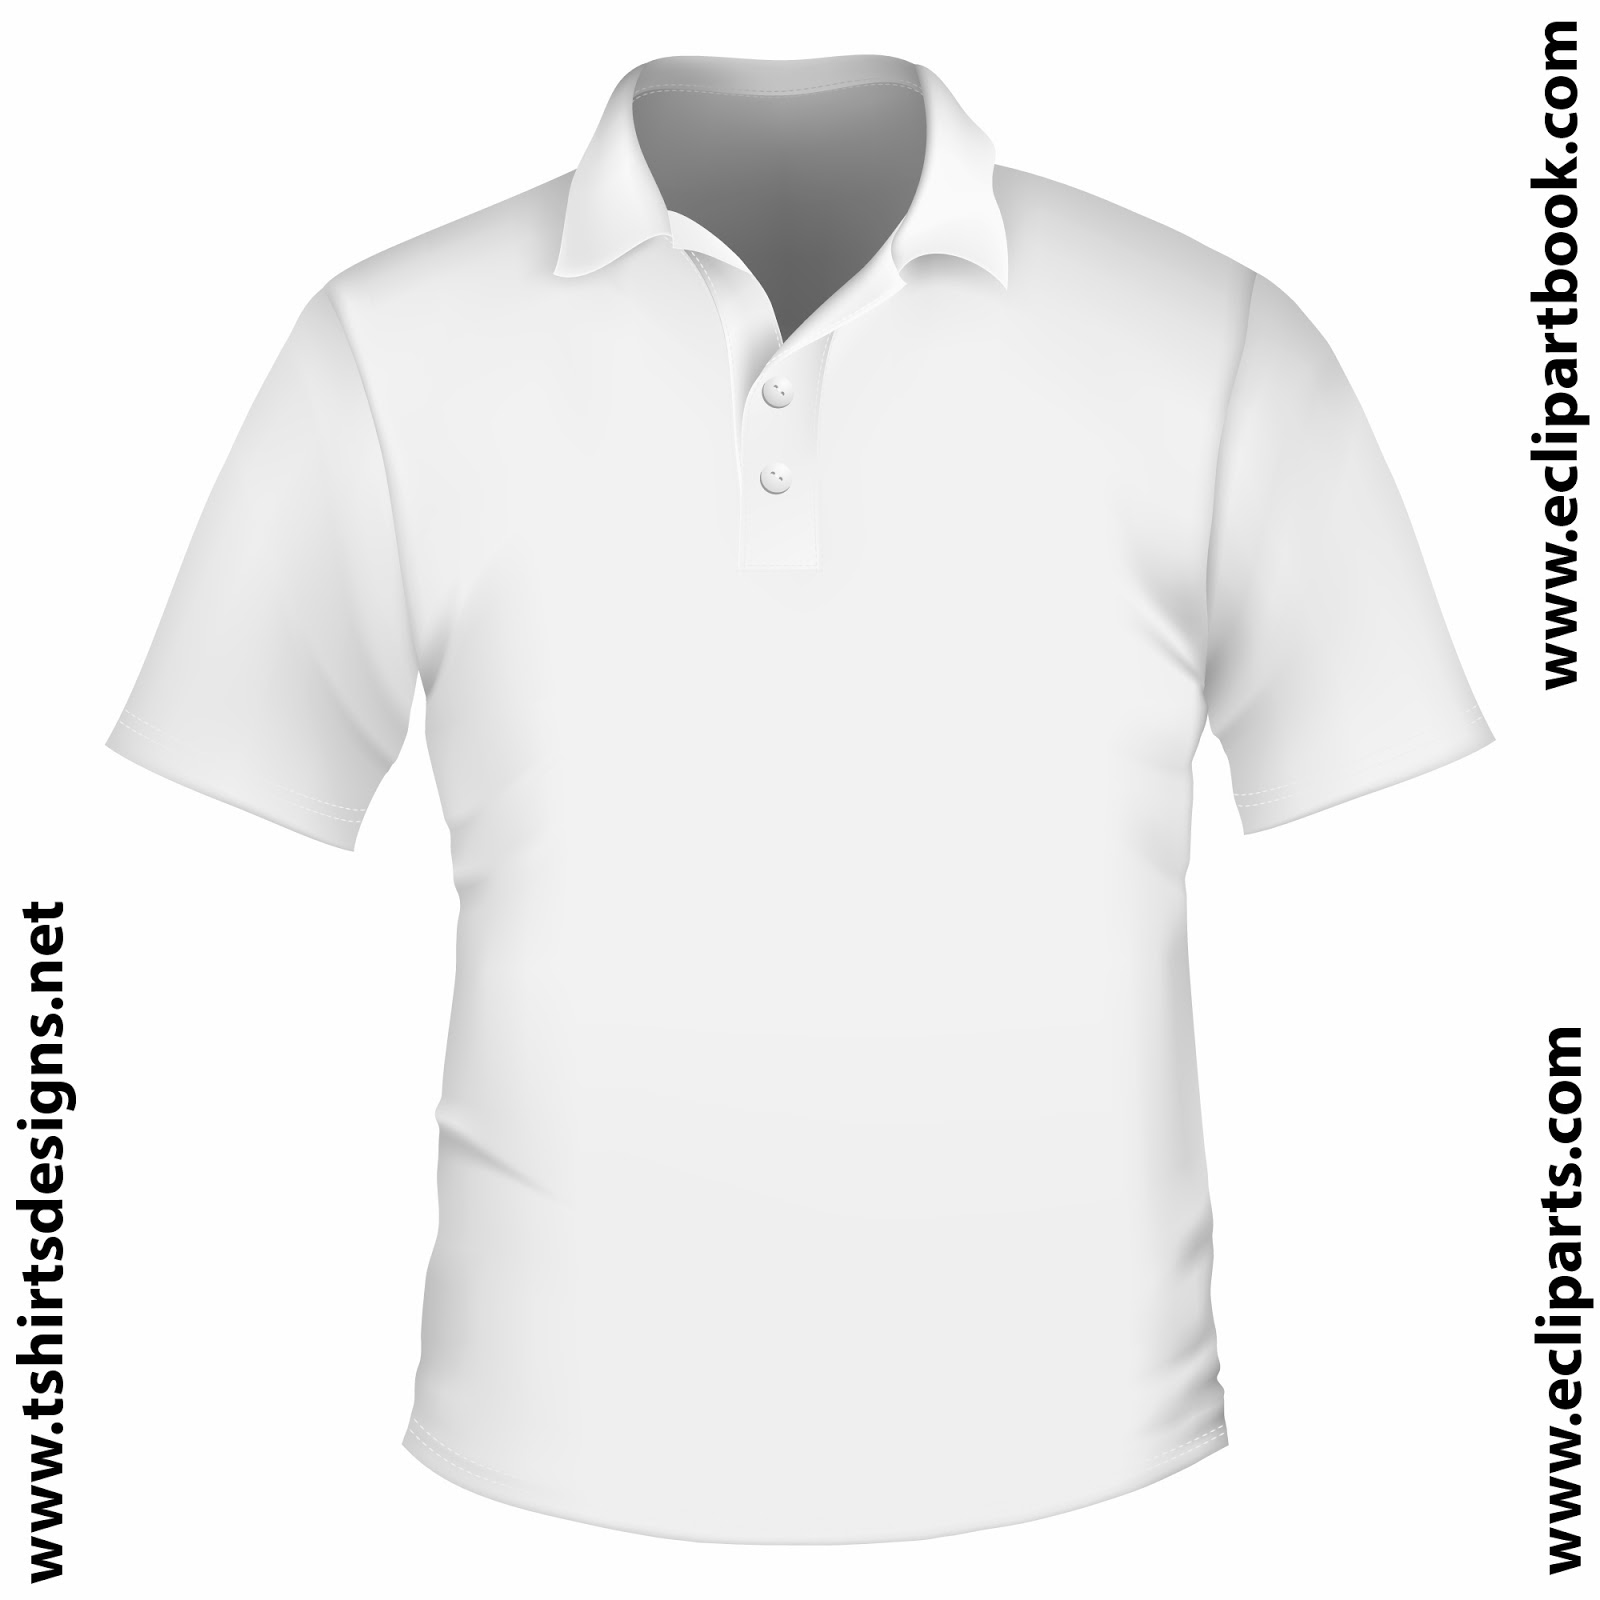 Tshirts Designs Digital T Shirt Printing White Polo T Shirt Front